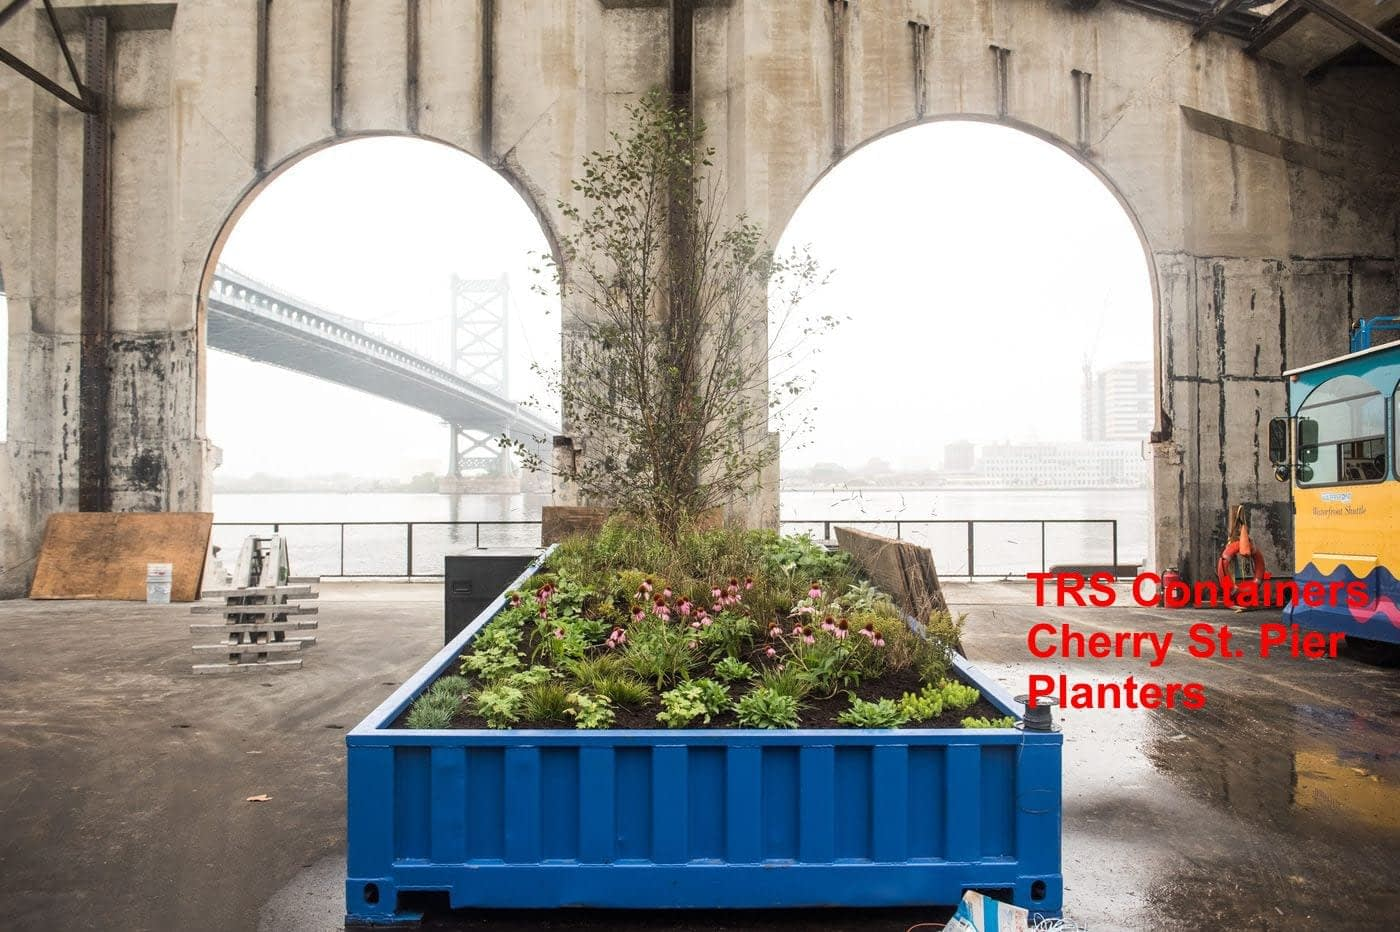 TRS fabricates malls, event space + planters